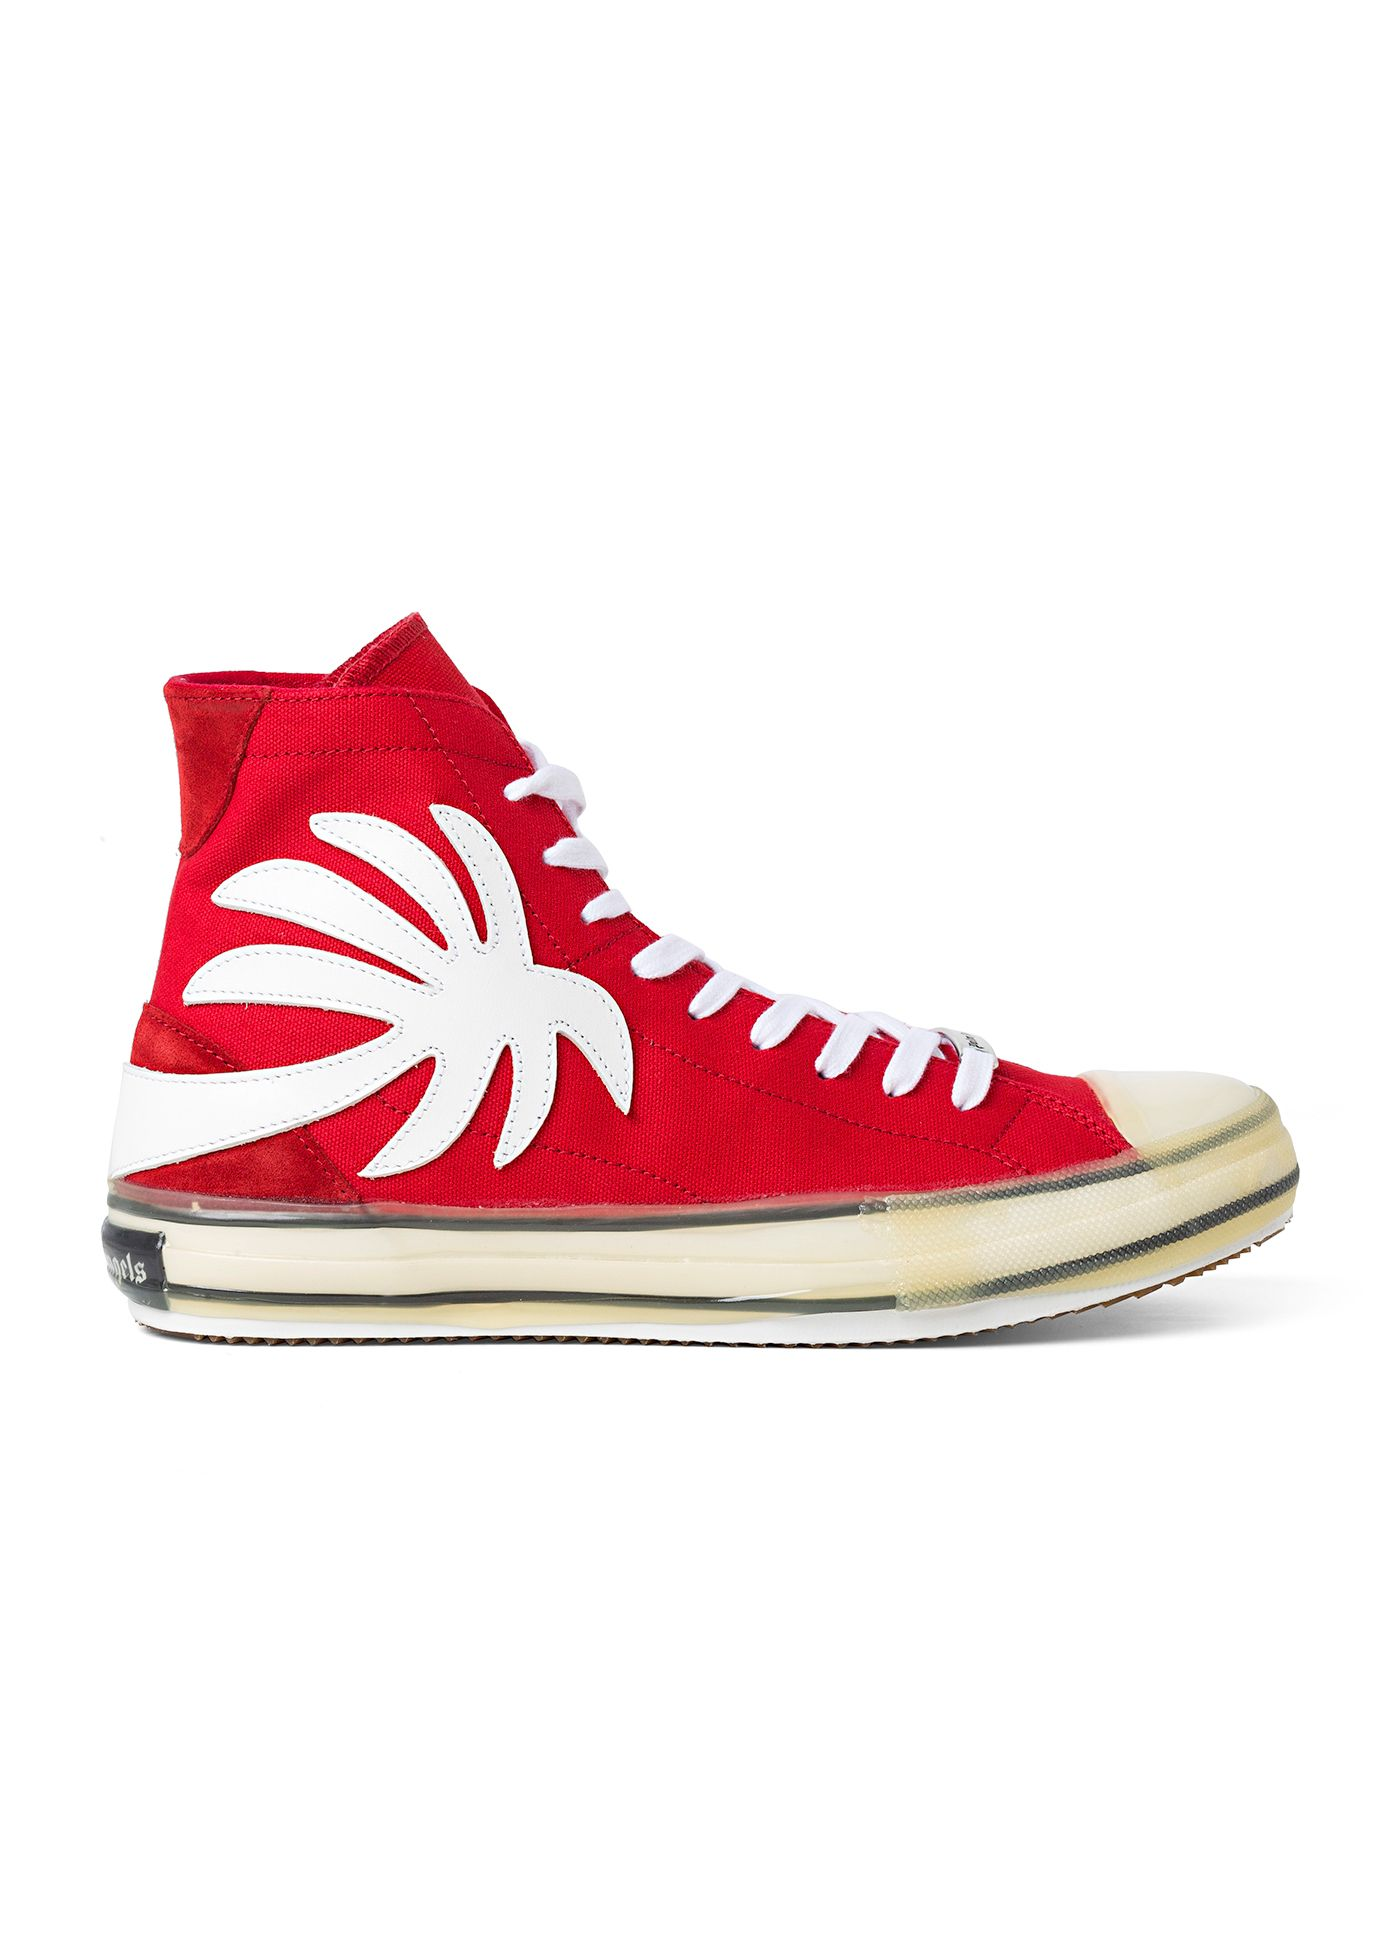 VULC PALM HIGH TOP CANVAS image number 0